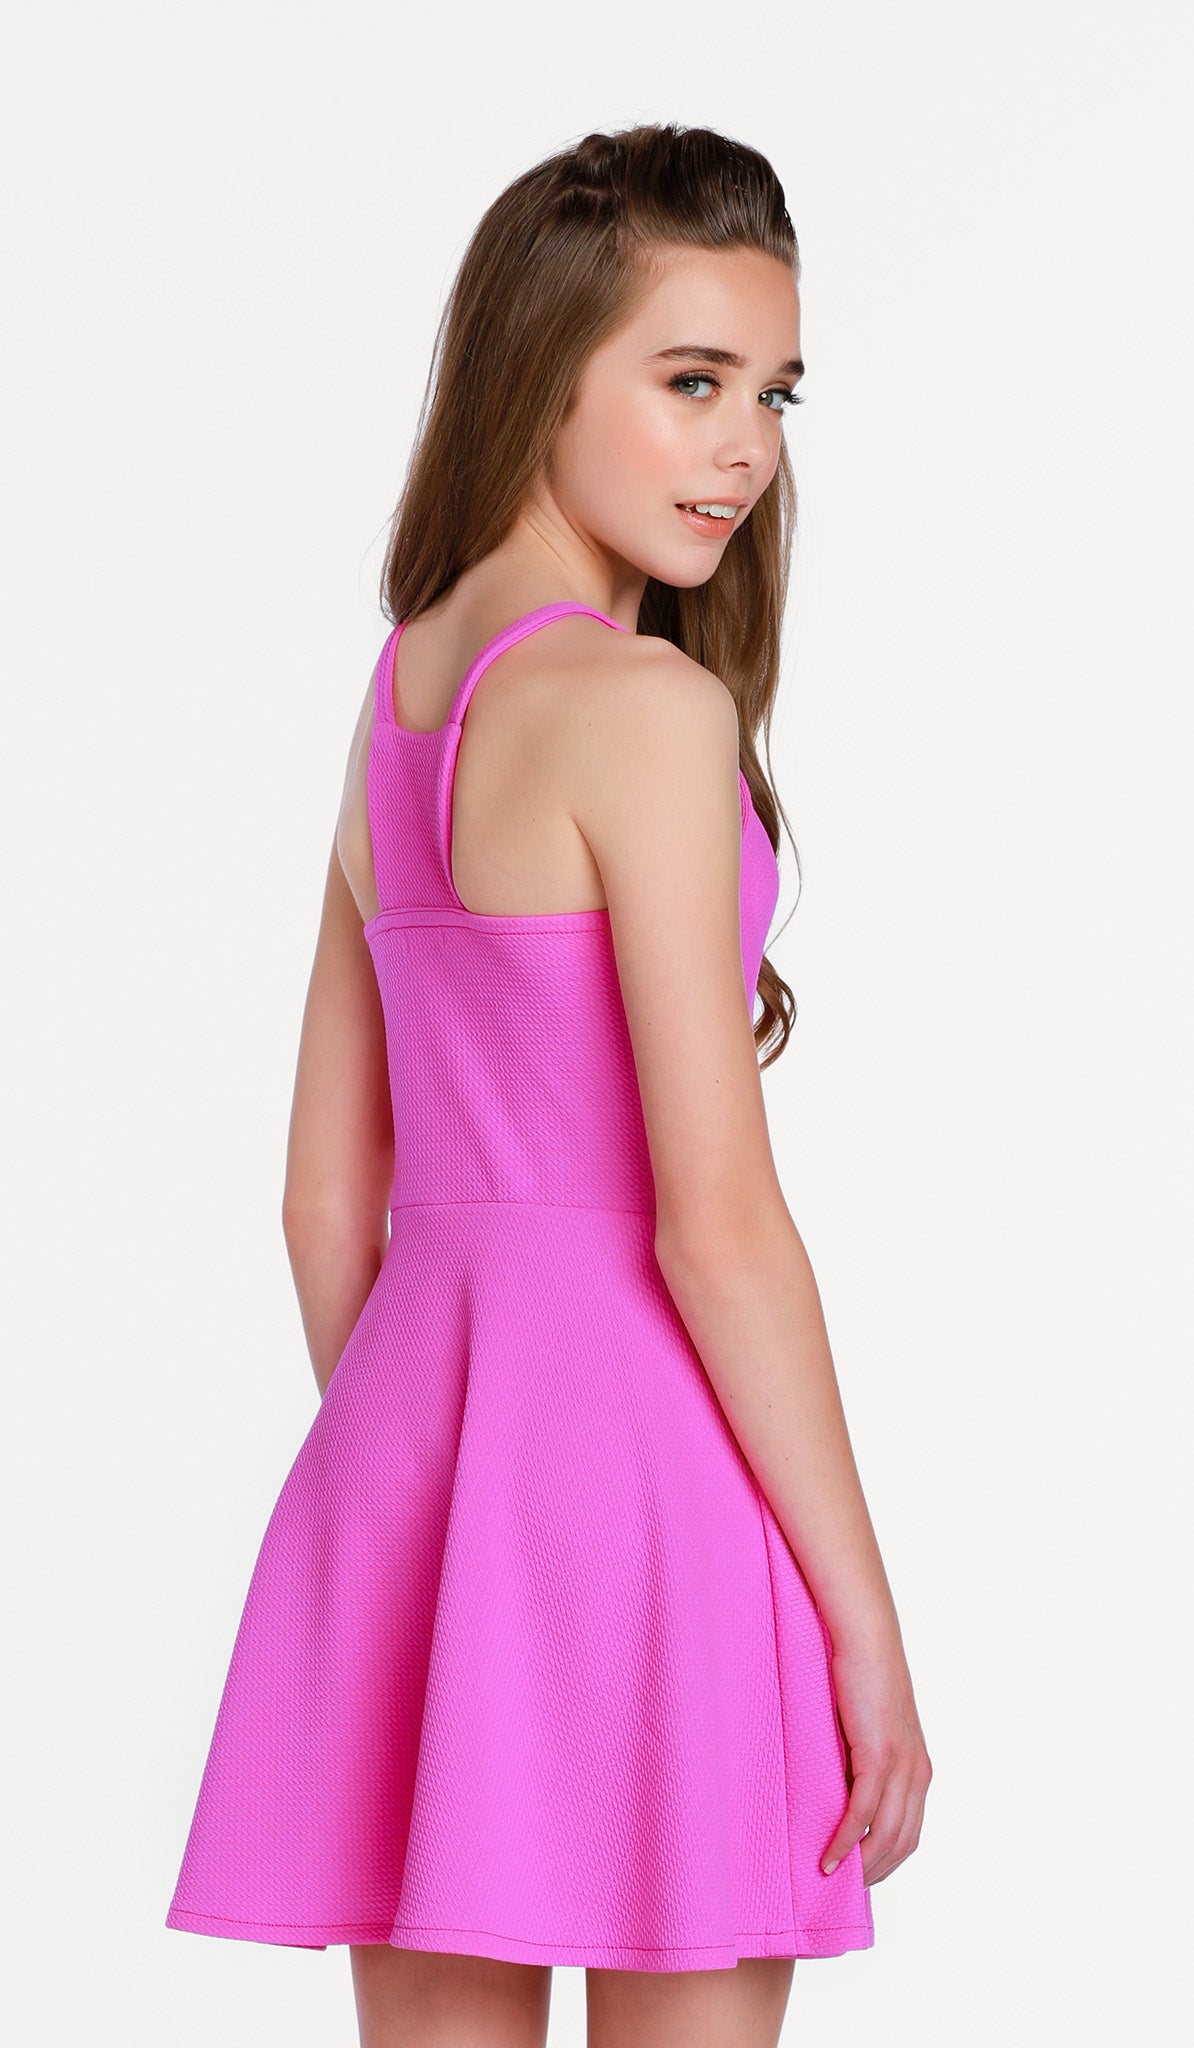 The Gianna Dress - Pink textured stretch knit fit and flare dress